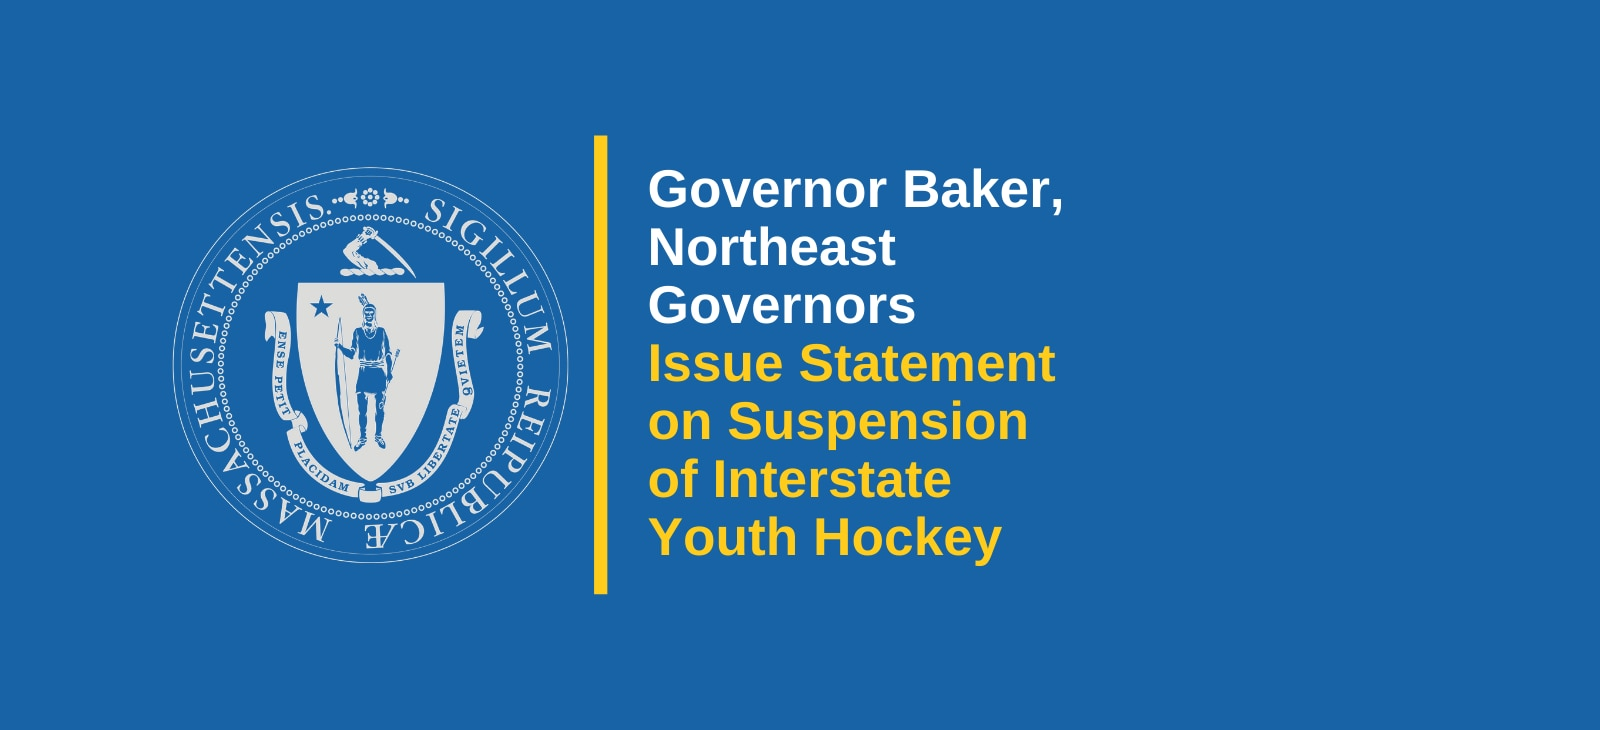 Joint Statement from the Offices of Governors Baker, Murphy, Mills, Raimondo, Sununu, Scott and Lamont on the Suspension of Interstate Youth Hockey